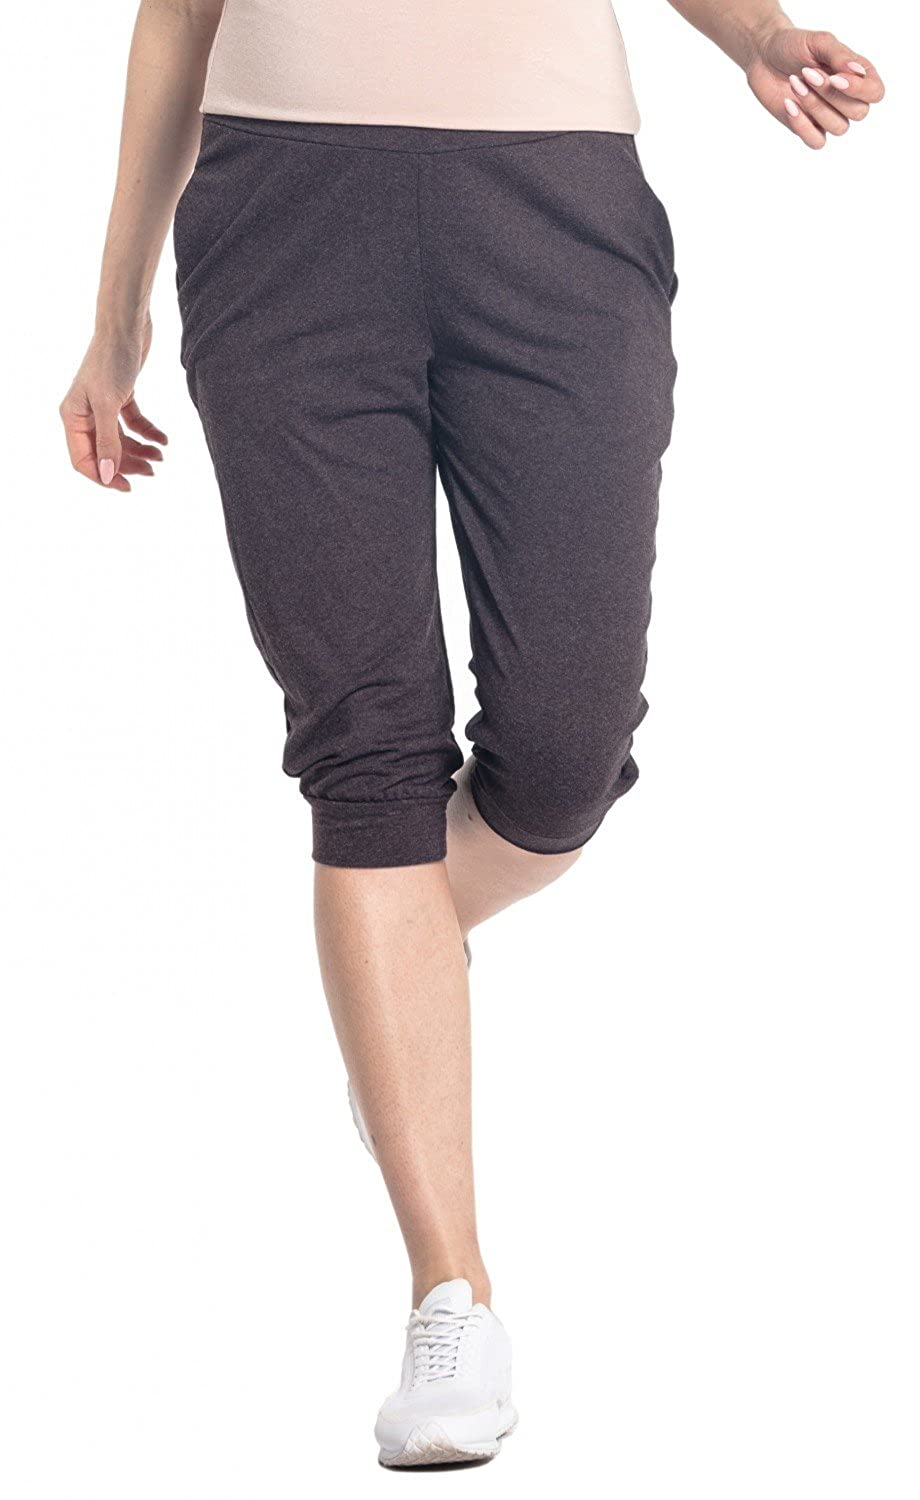 582p HAPPY MAMA Womens Maternity Crop Pants Elastic Contrast Belly Waistband